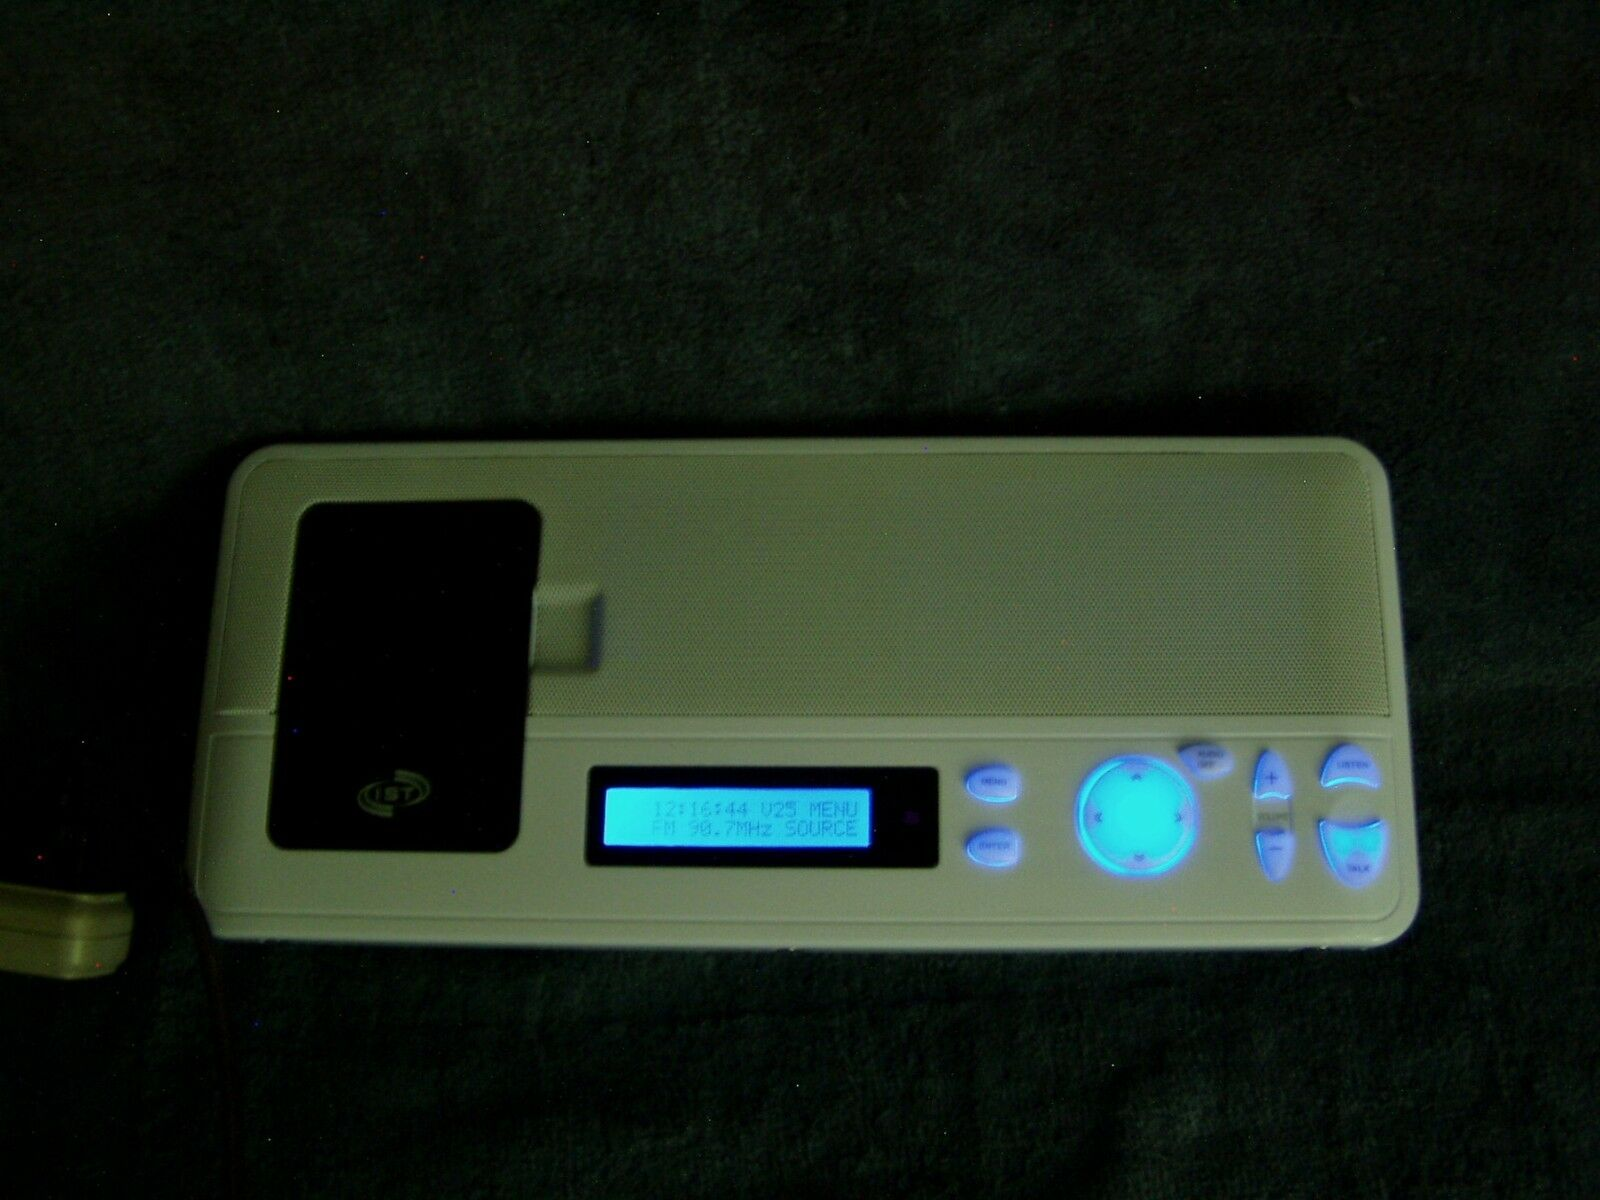 4 Room + Door Kit IST IntraSonic I2000M Home Intercom System / iPod Dock